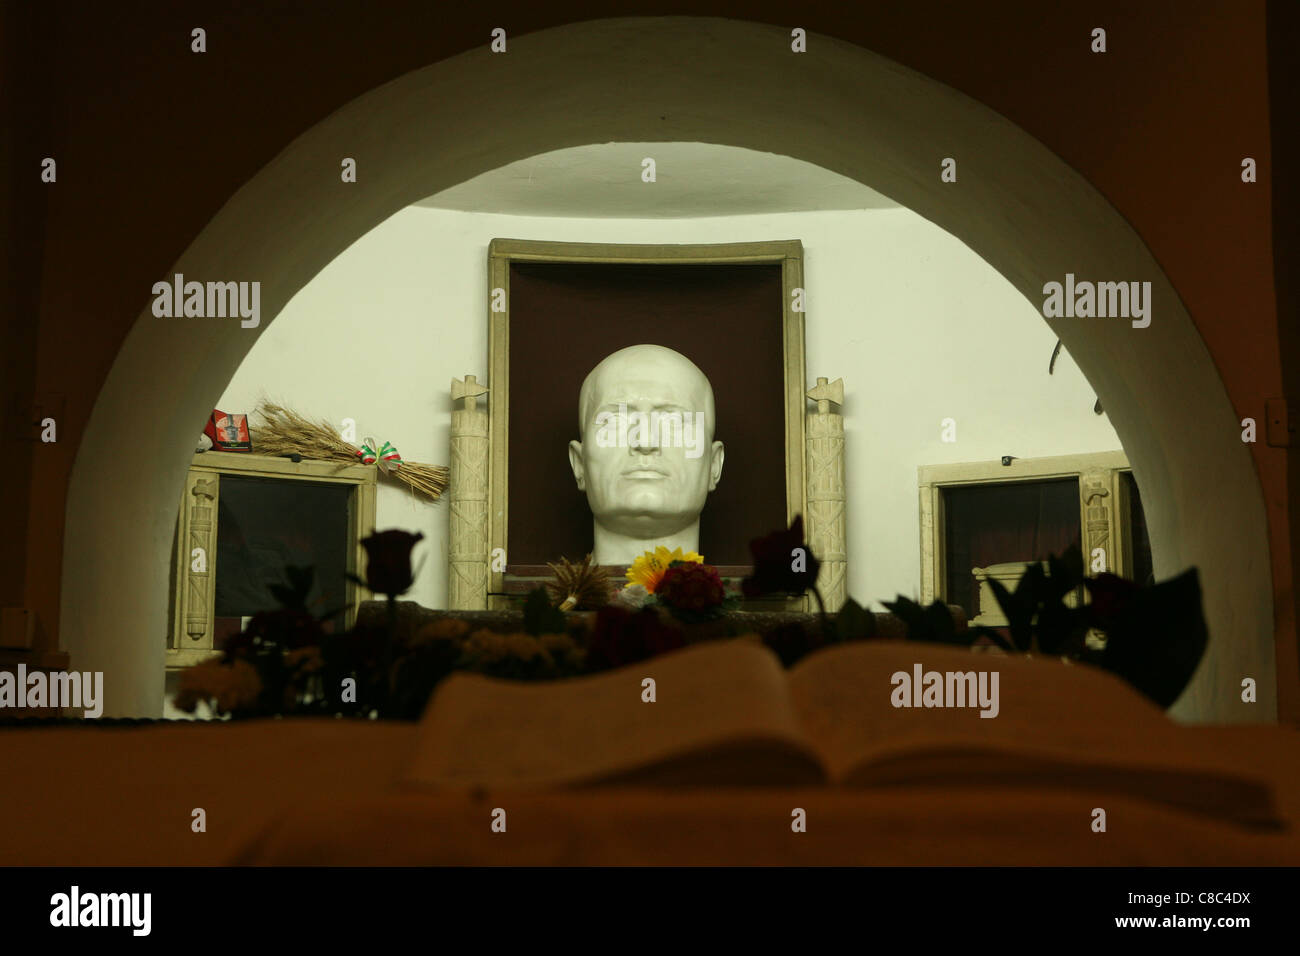 Tomb of Italian Fascist dictator Benito Mussolini in the Mussolini family crypt in the cemetery of Predappio, Italy. Stock Photo